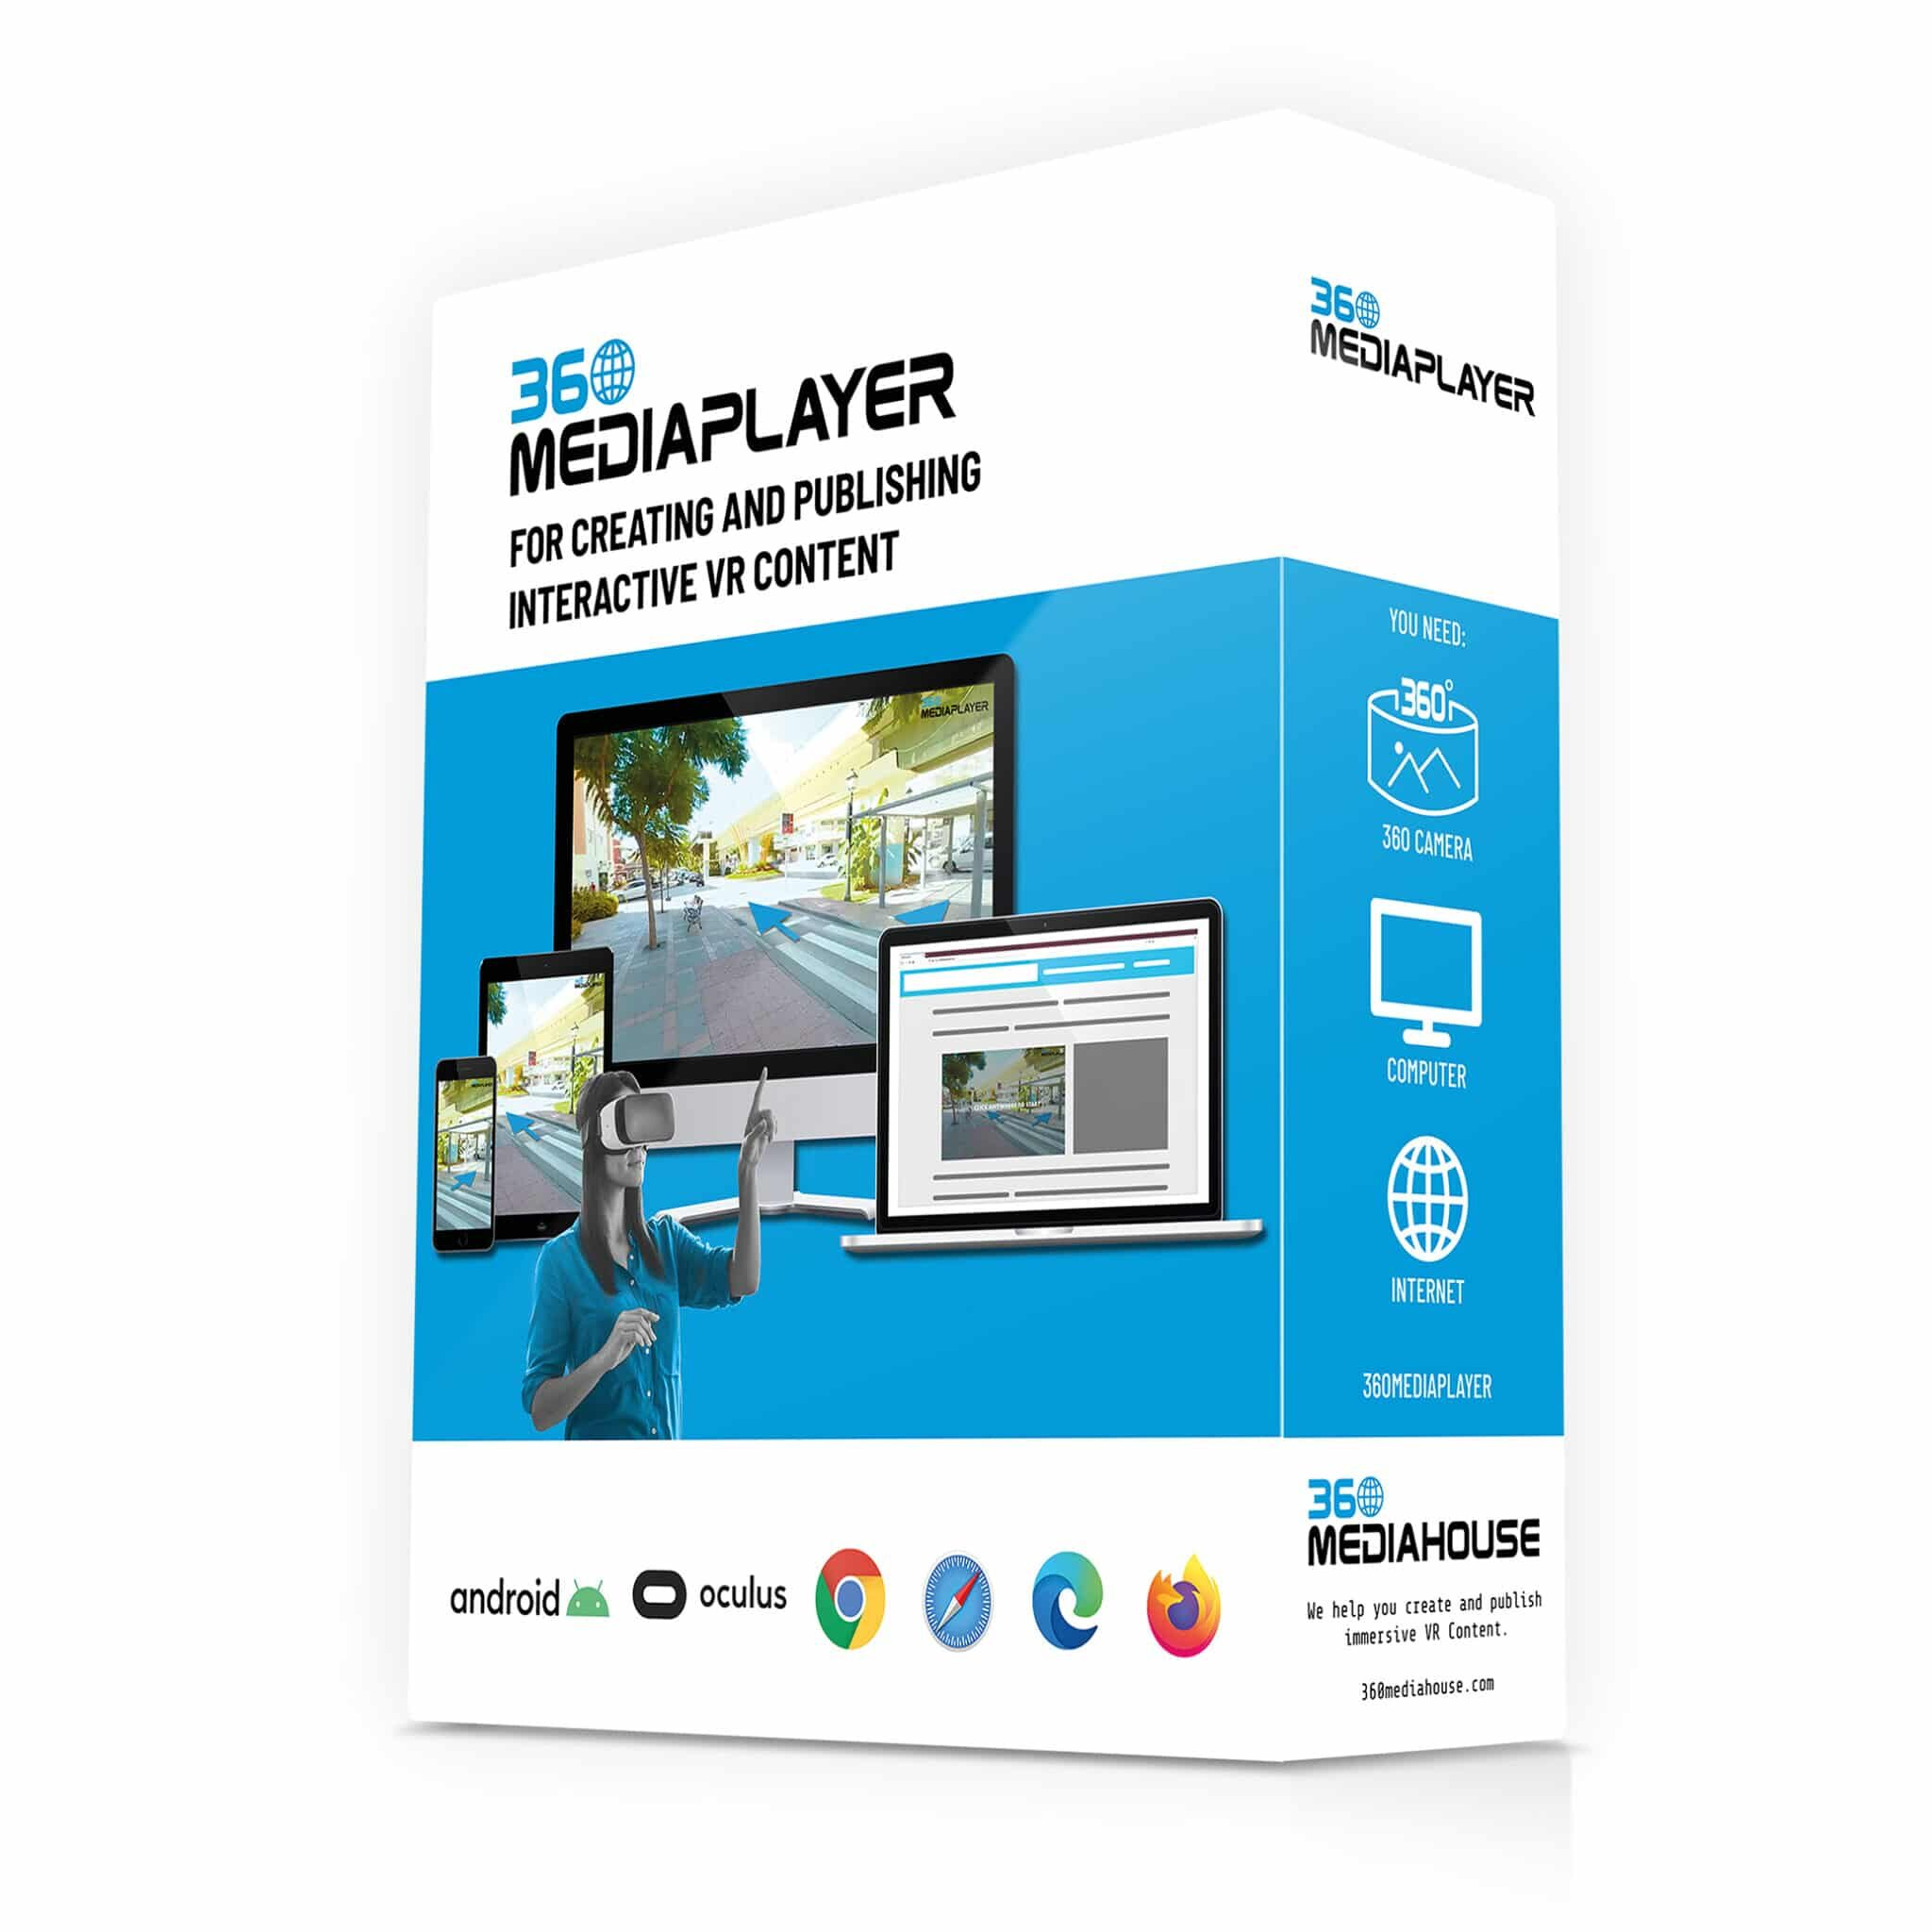 Product launch: 360Mediaplayer software allows anyone to create interactive VR content